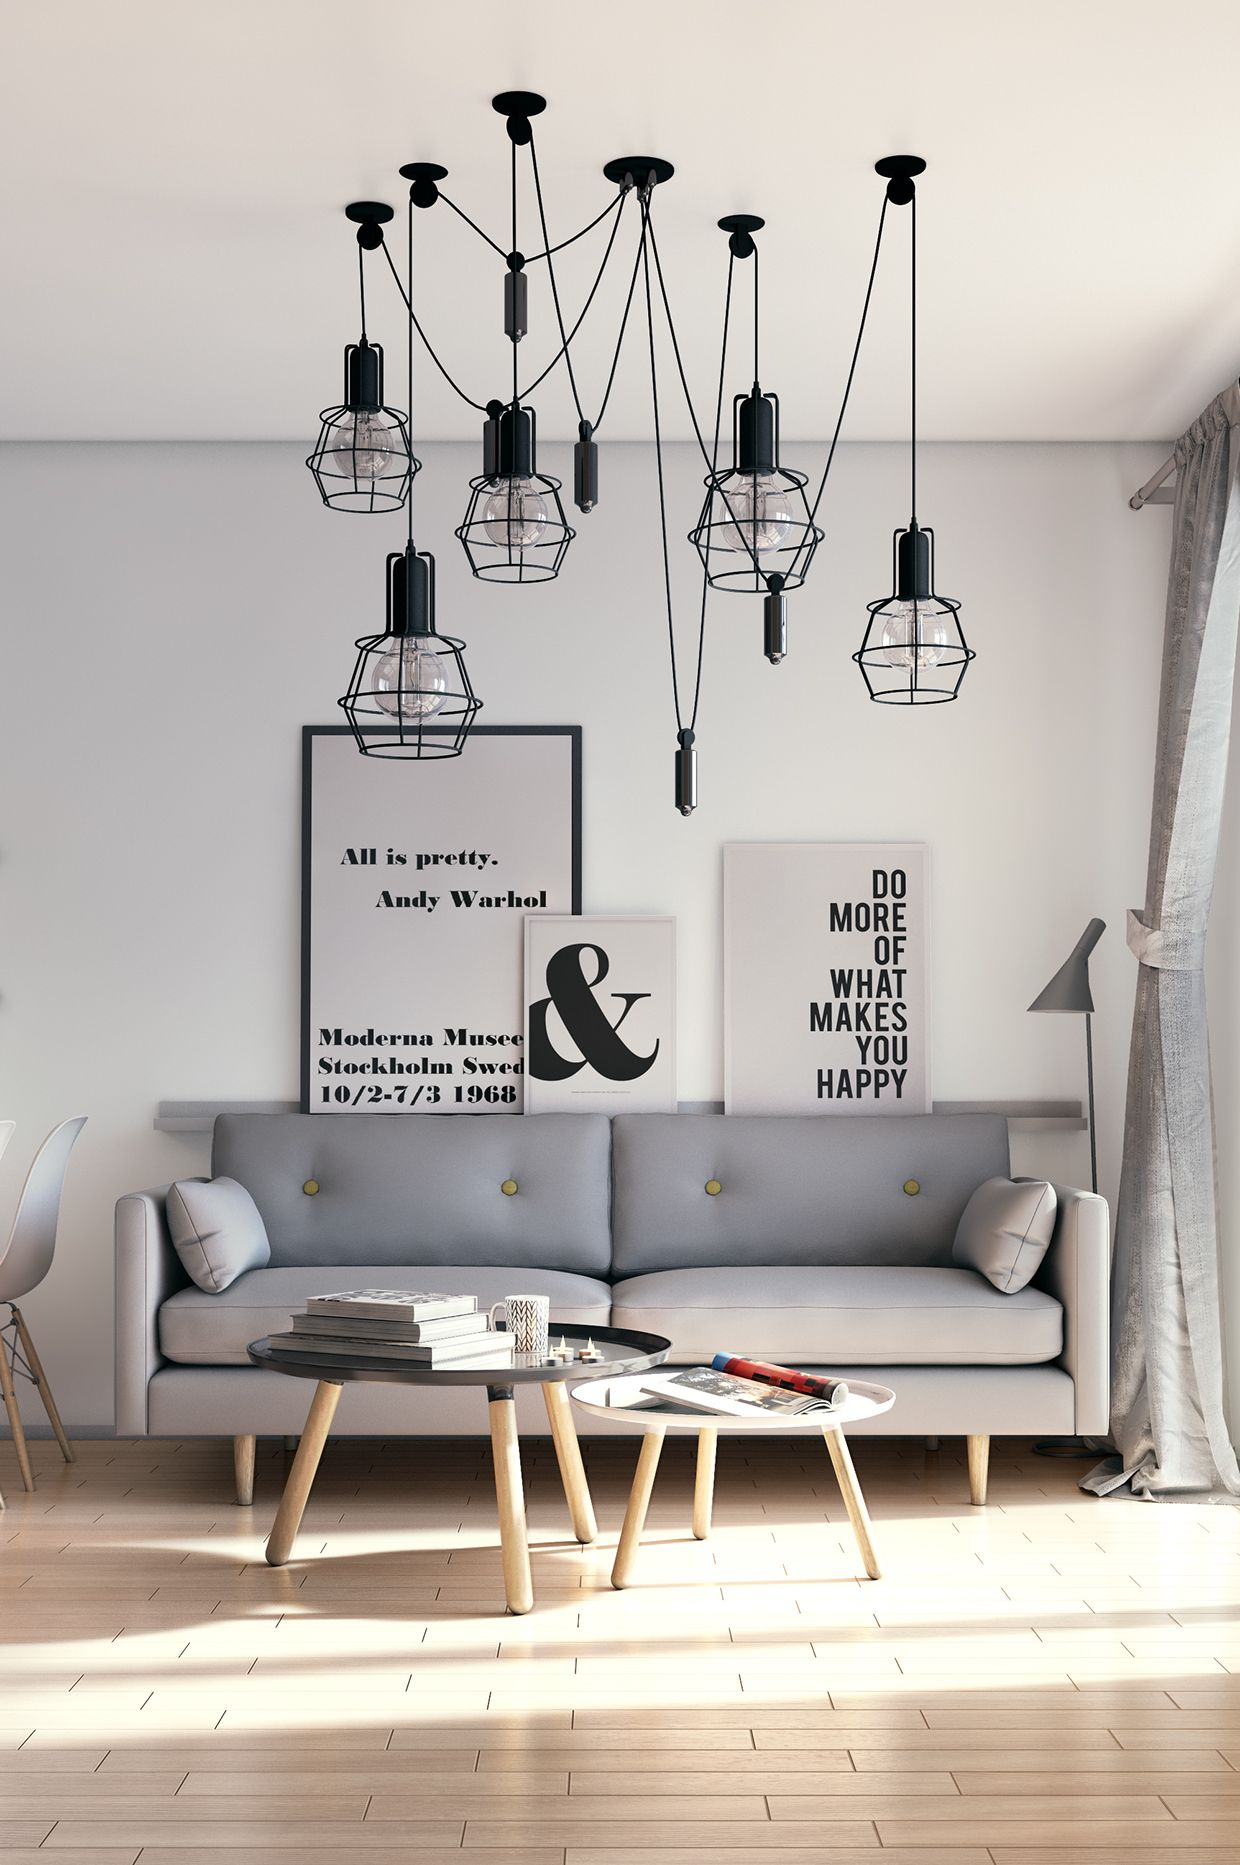 Scandinavian Living Room: Take a look at this amazing living